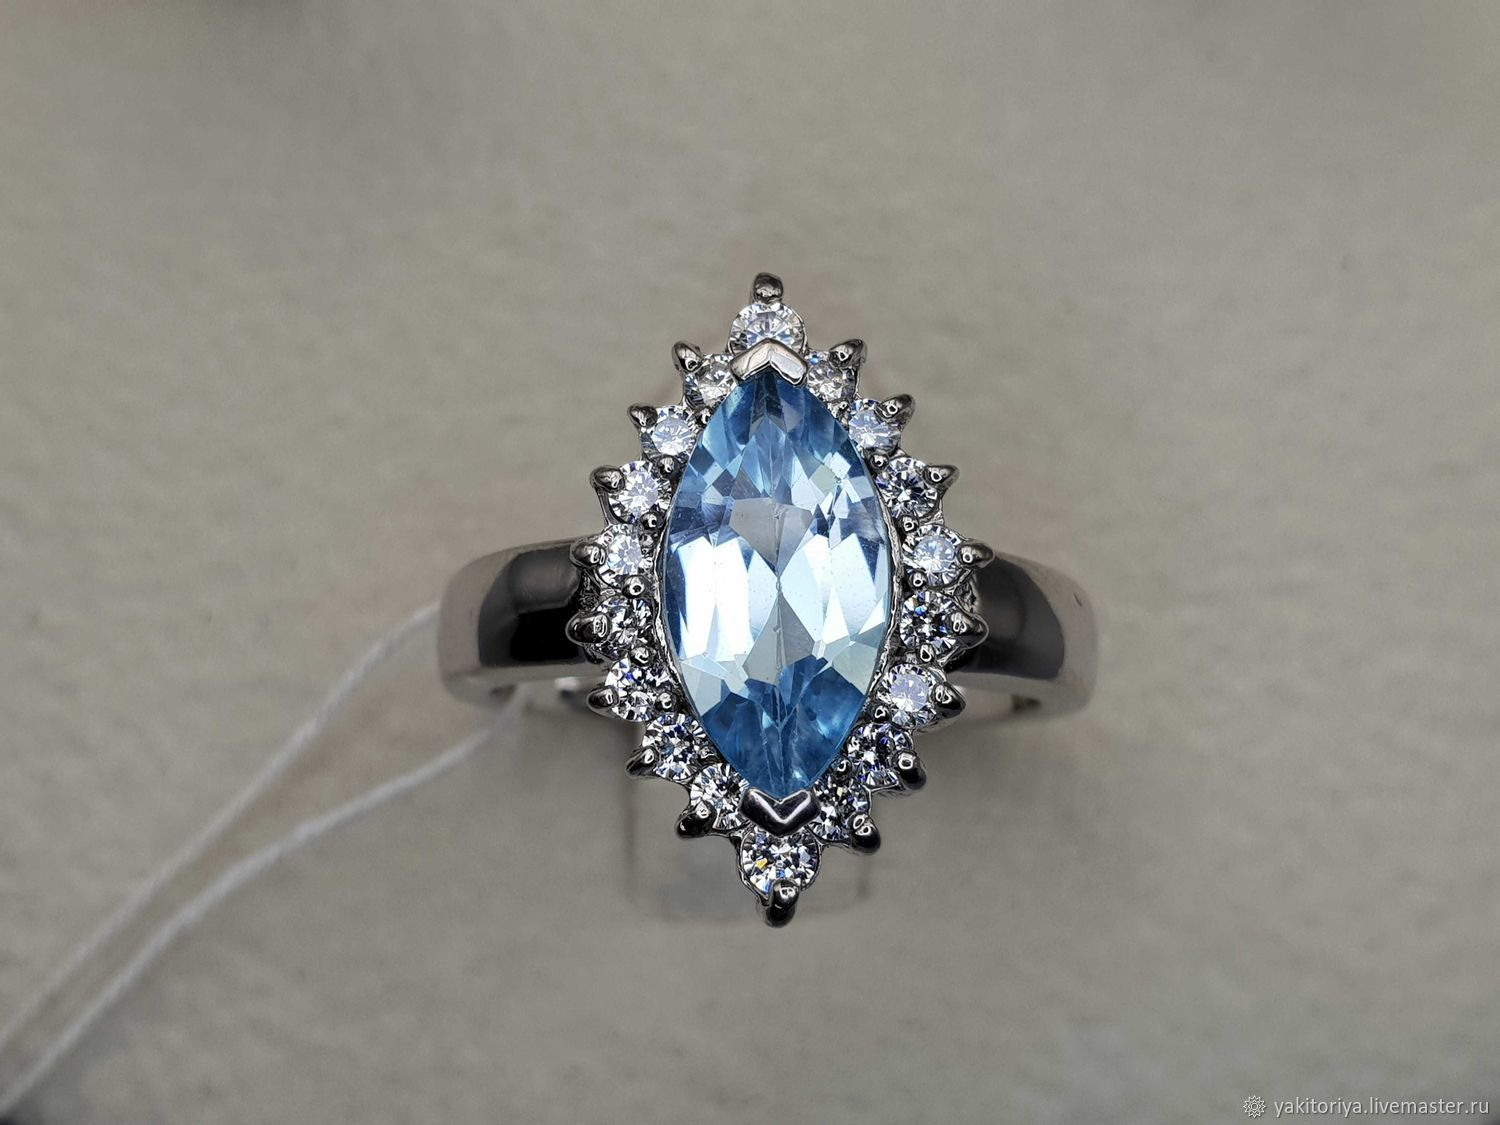 Silver ring with blue topaz 12h6 mm, Rings, Moscow,  Фото №1